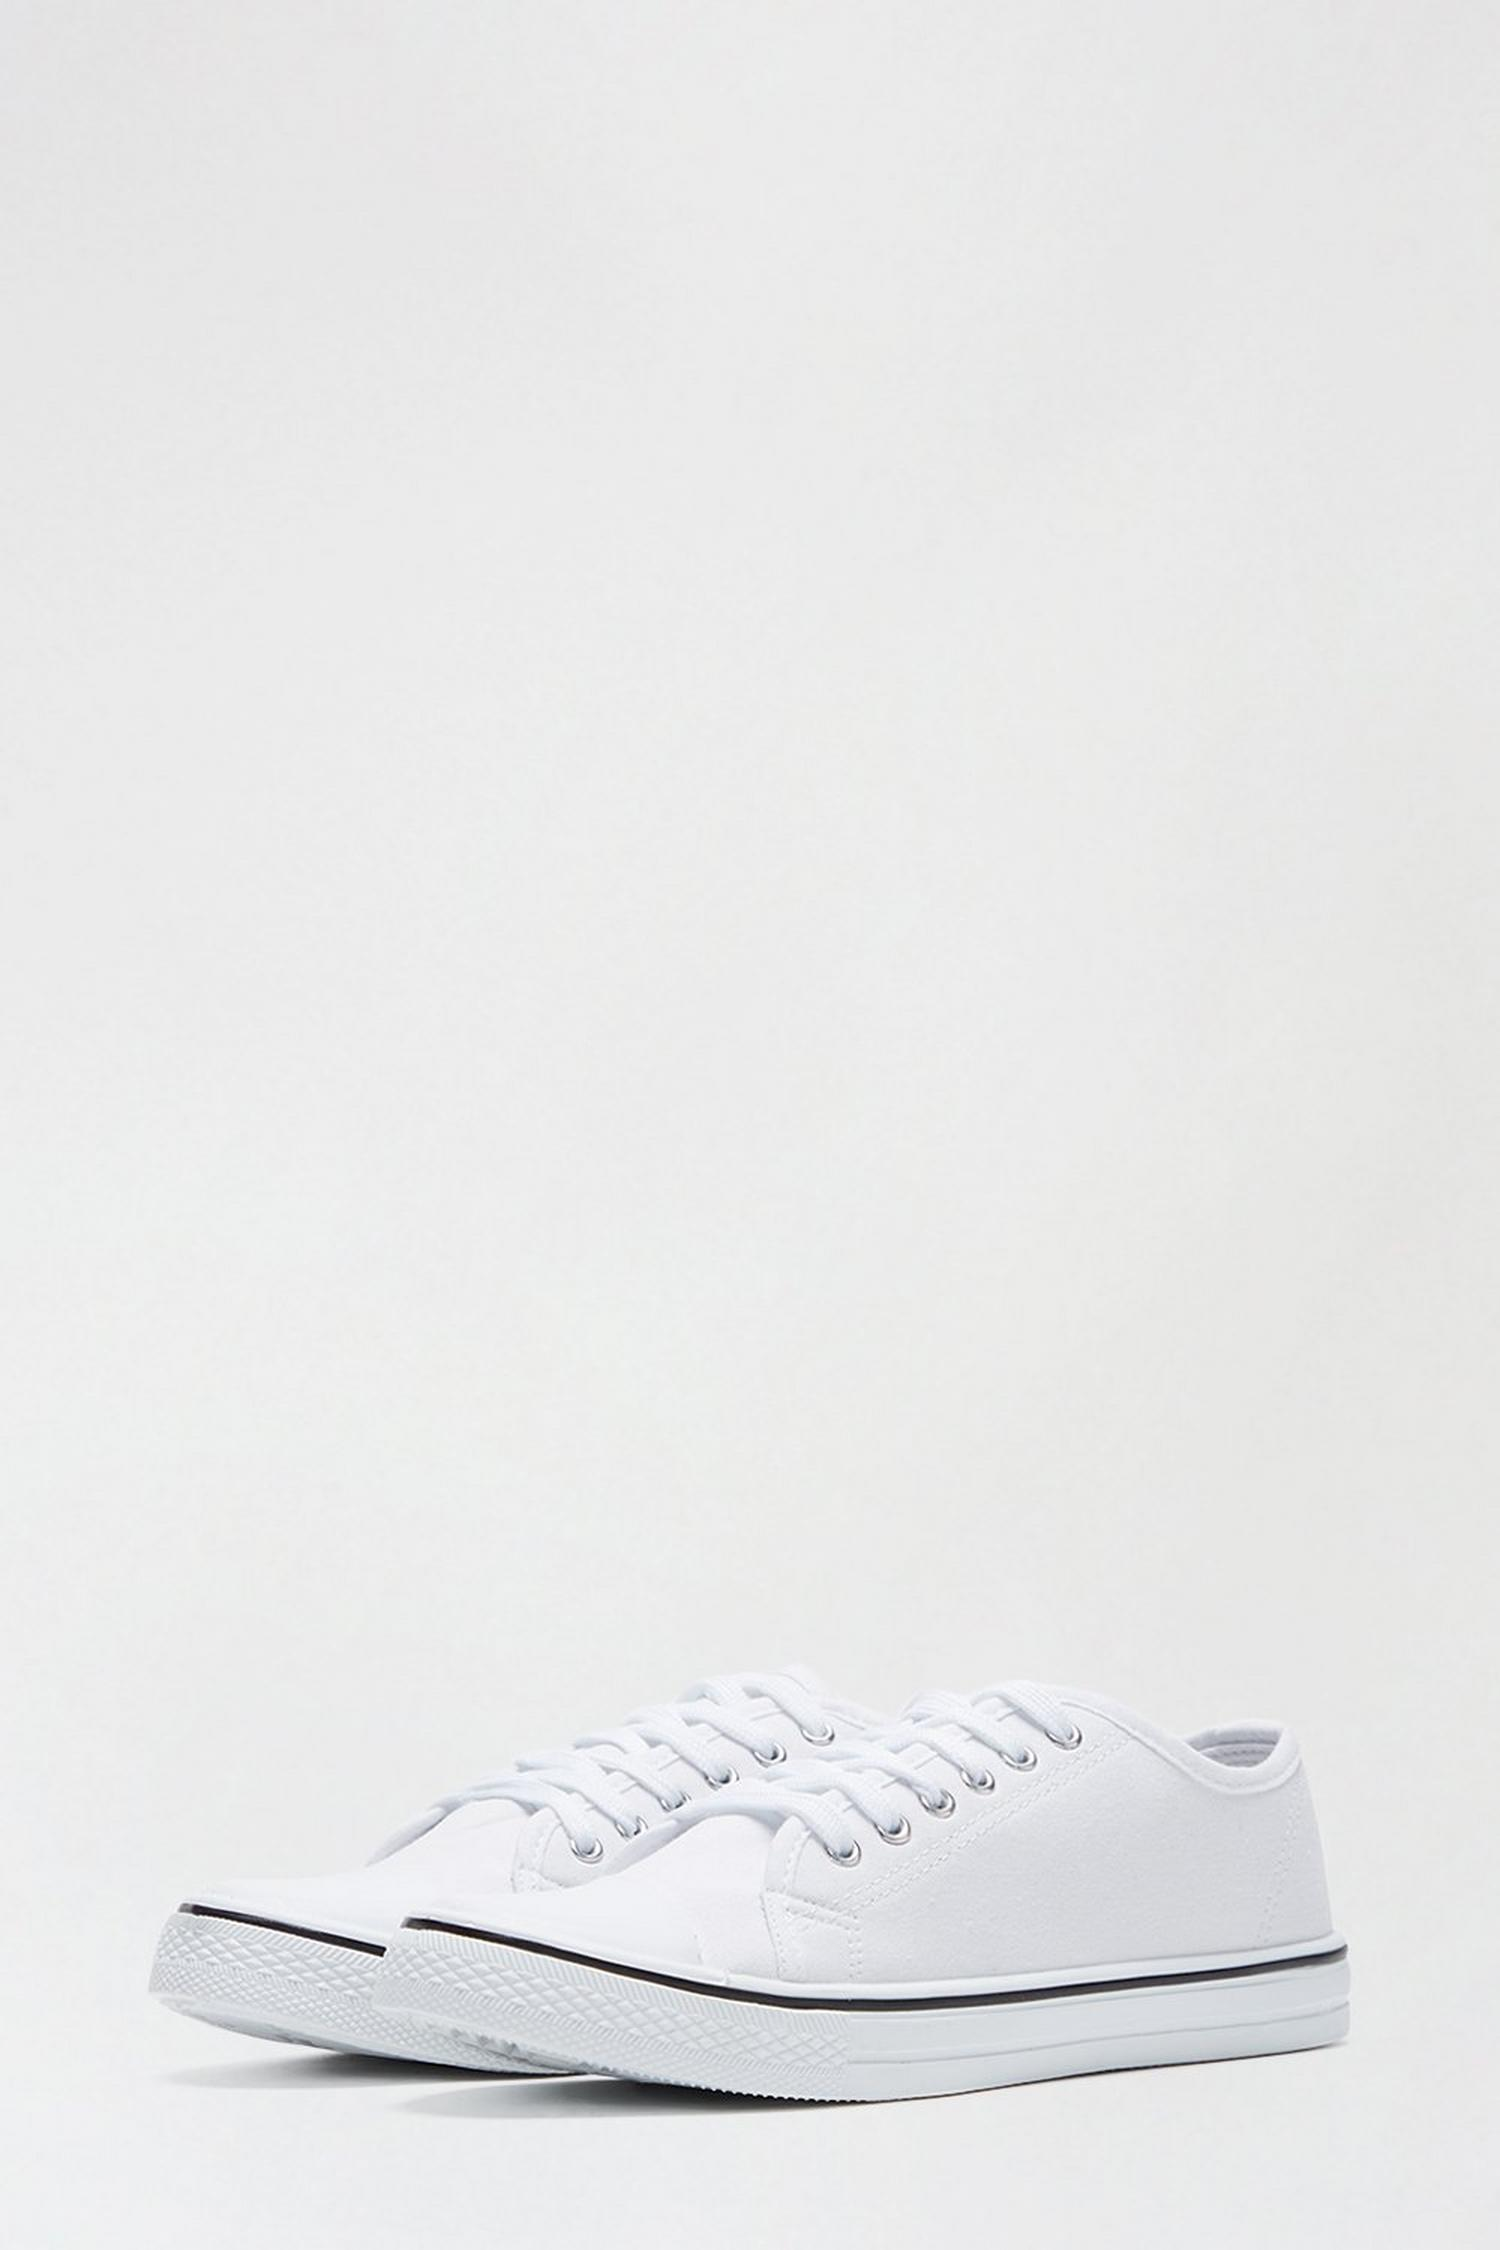 173 White India Canvas Lace Up Trainer image number 2